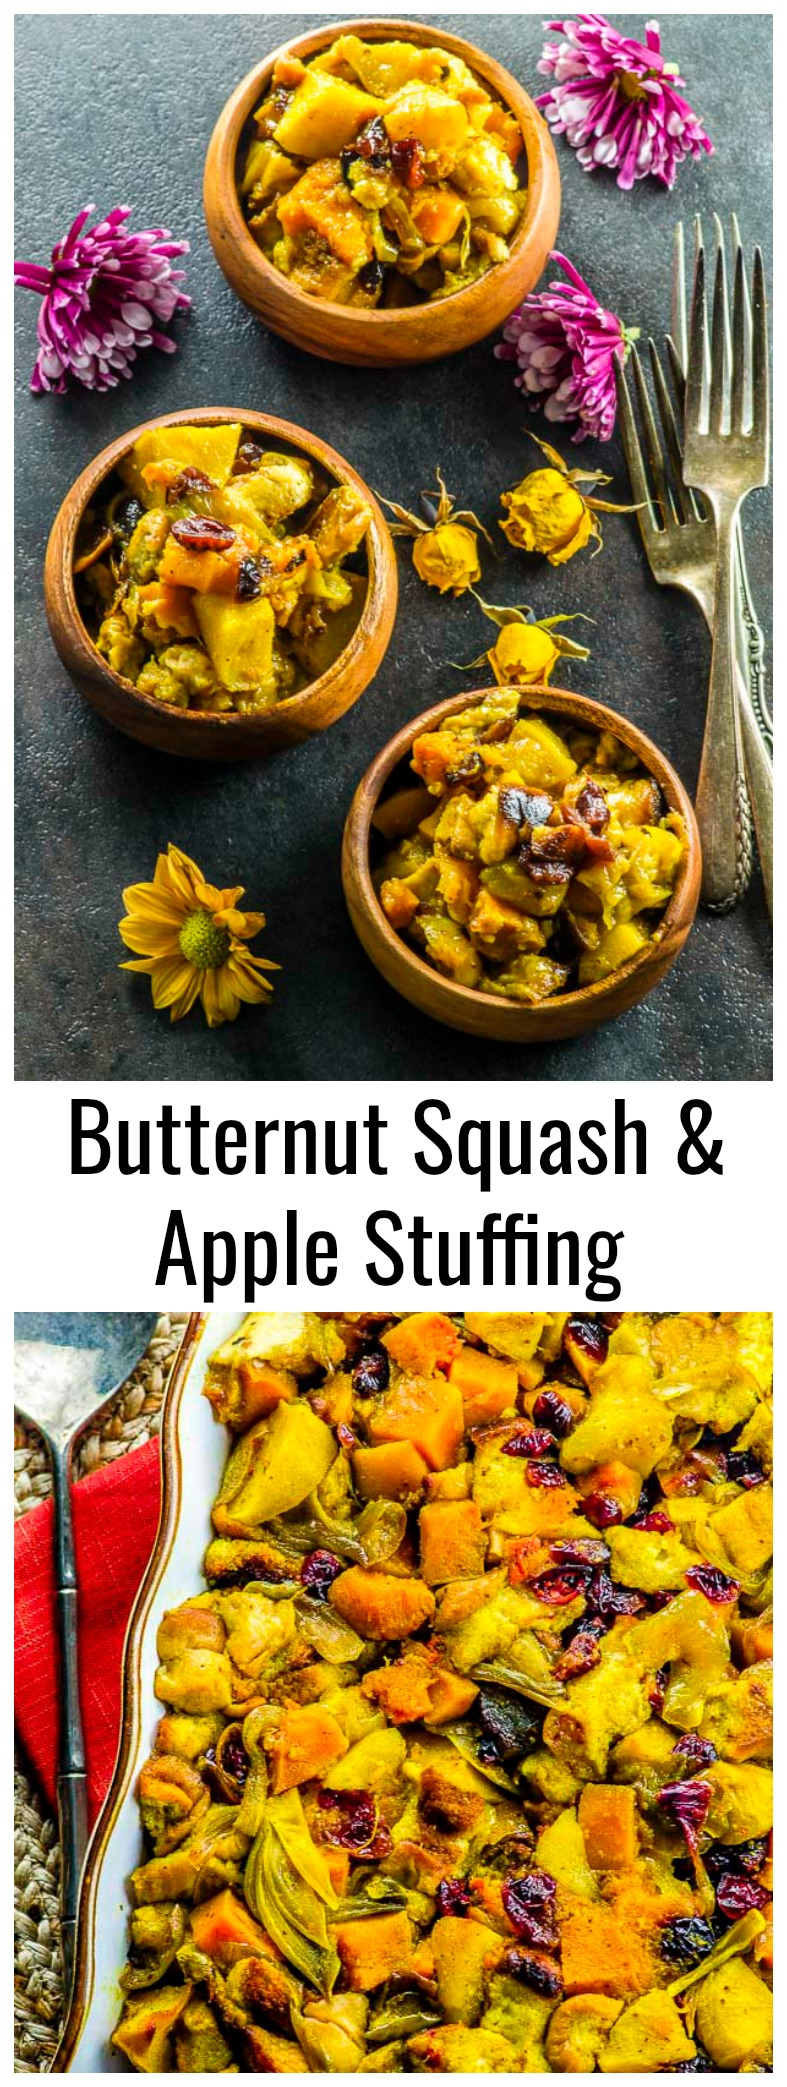 Tired of  serving the same old stuffing every year? Check out this Vegan Butternut Squash Apple Stuffing recipe and you'll surprise everyone at the Thanksgiving table! https://mayihavethatrecipe.com